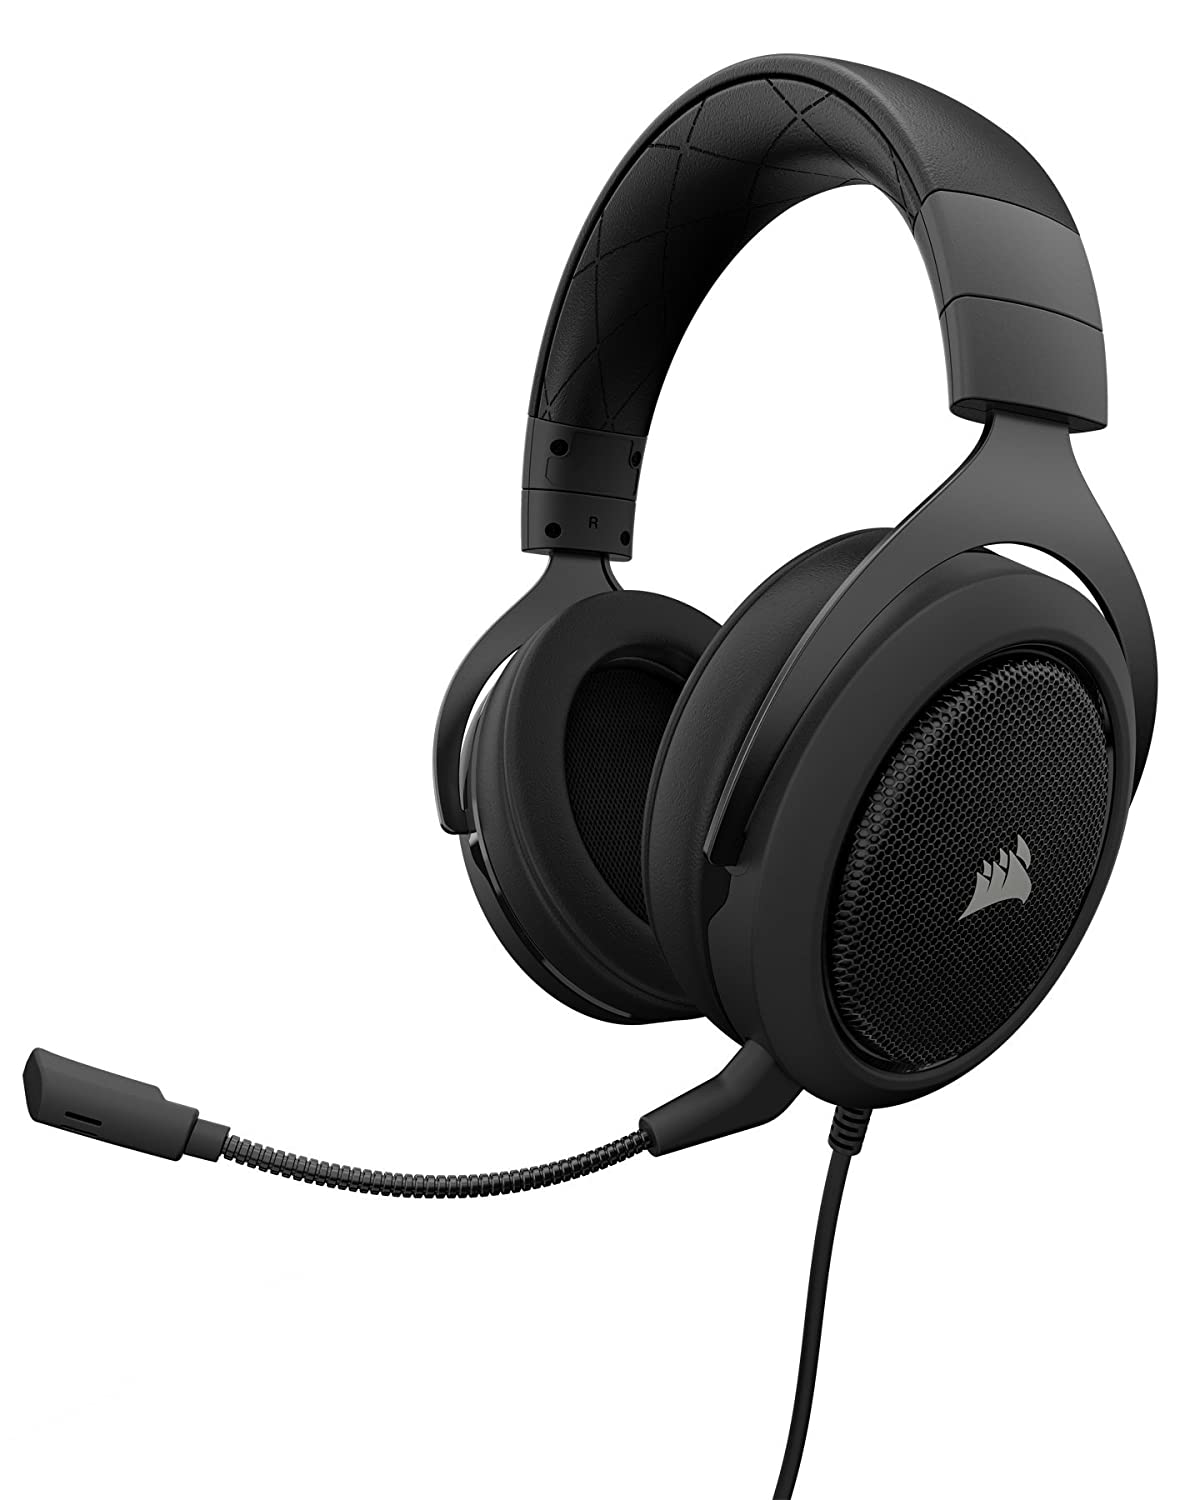 HyperX Cloud Alpha Gaming Headset Black Friday Deals